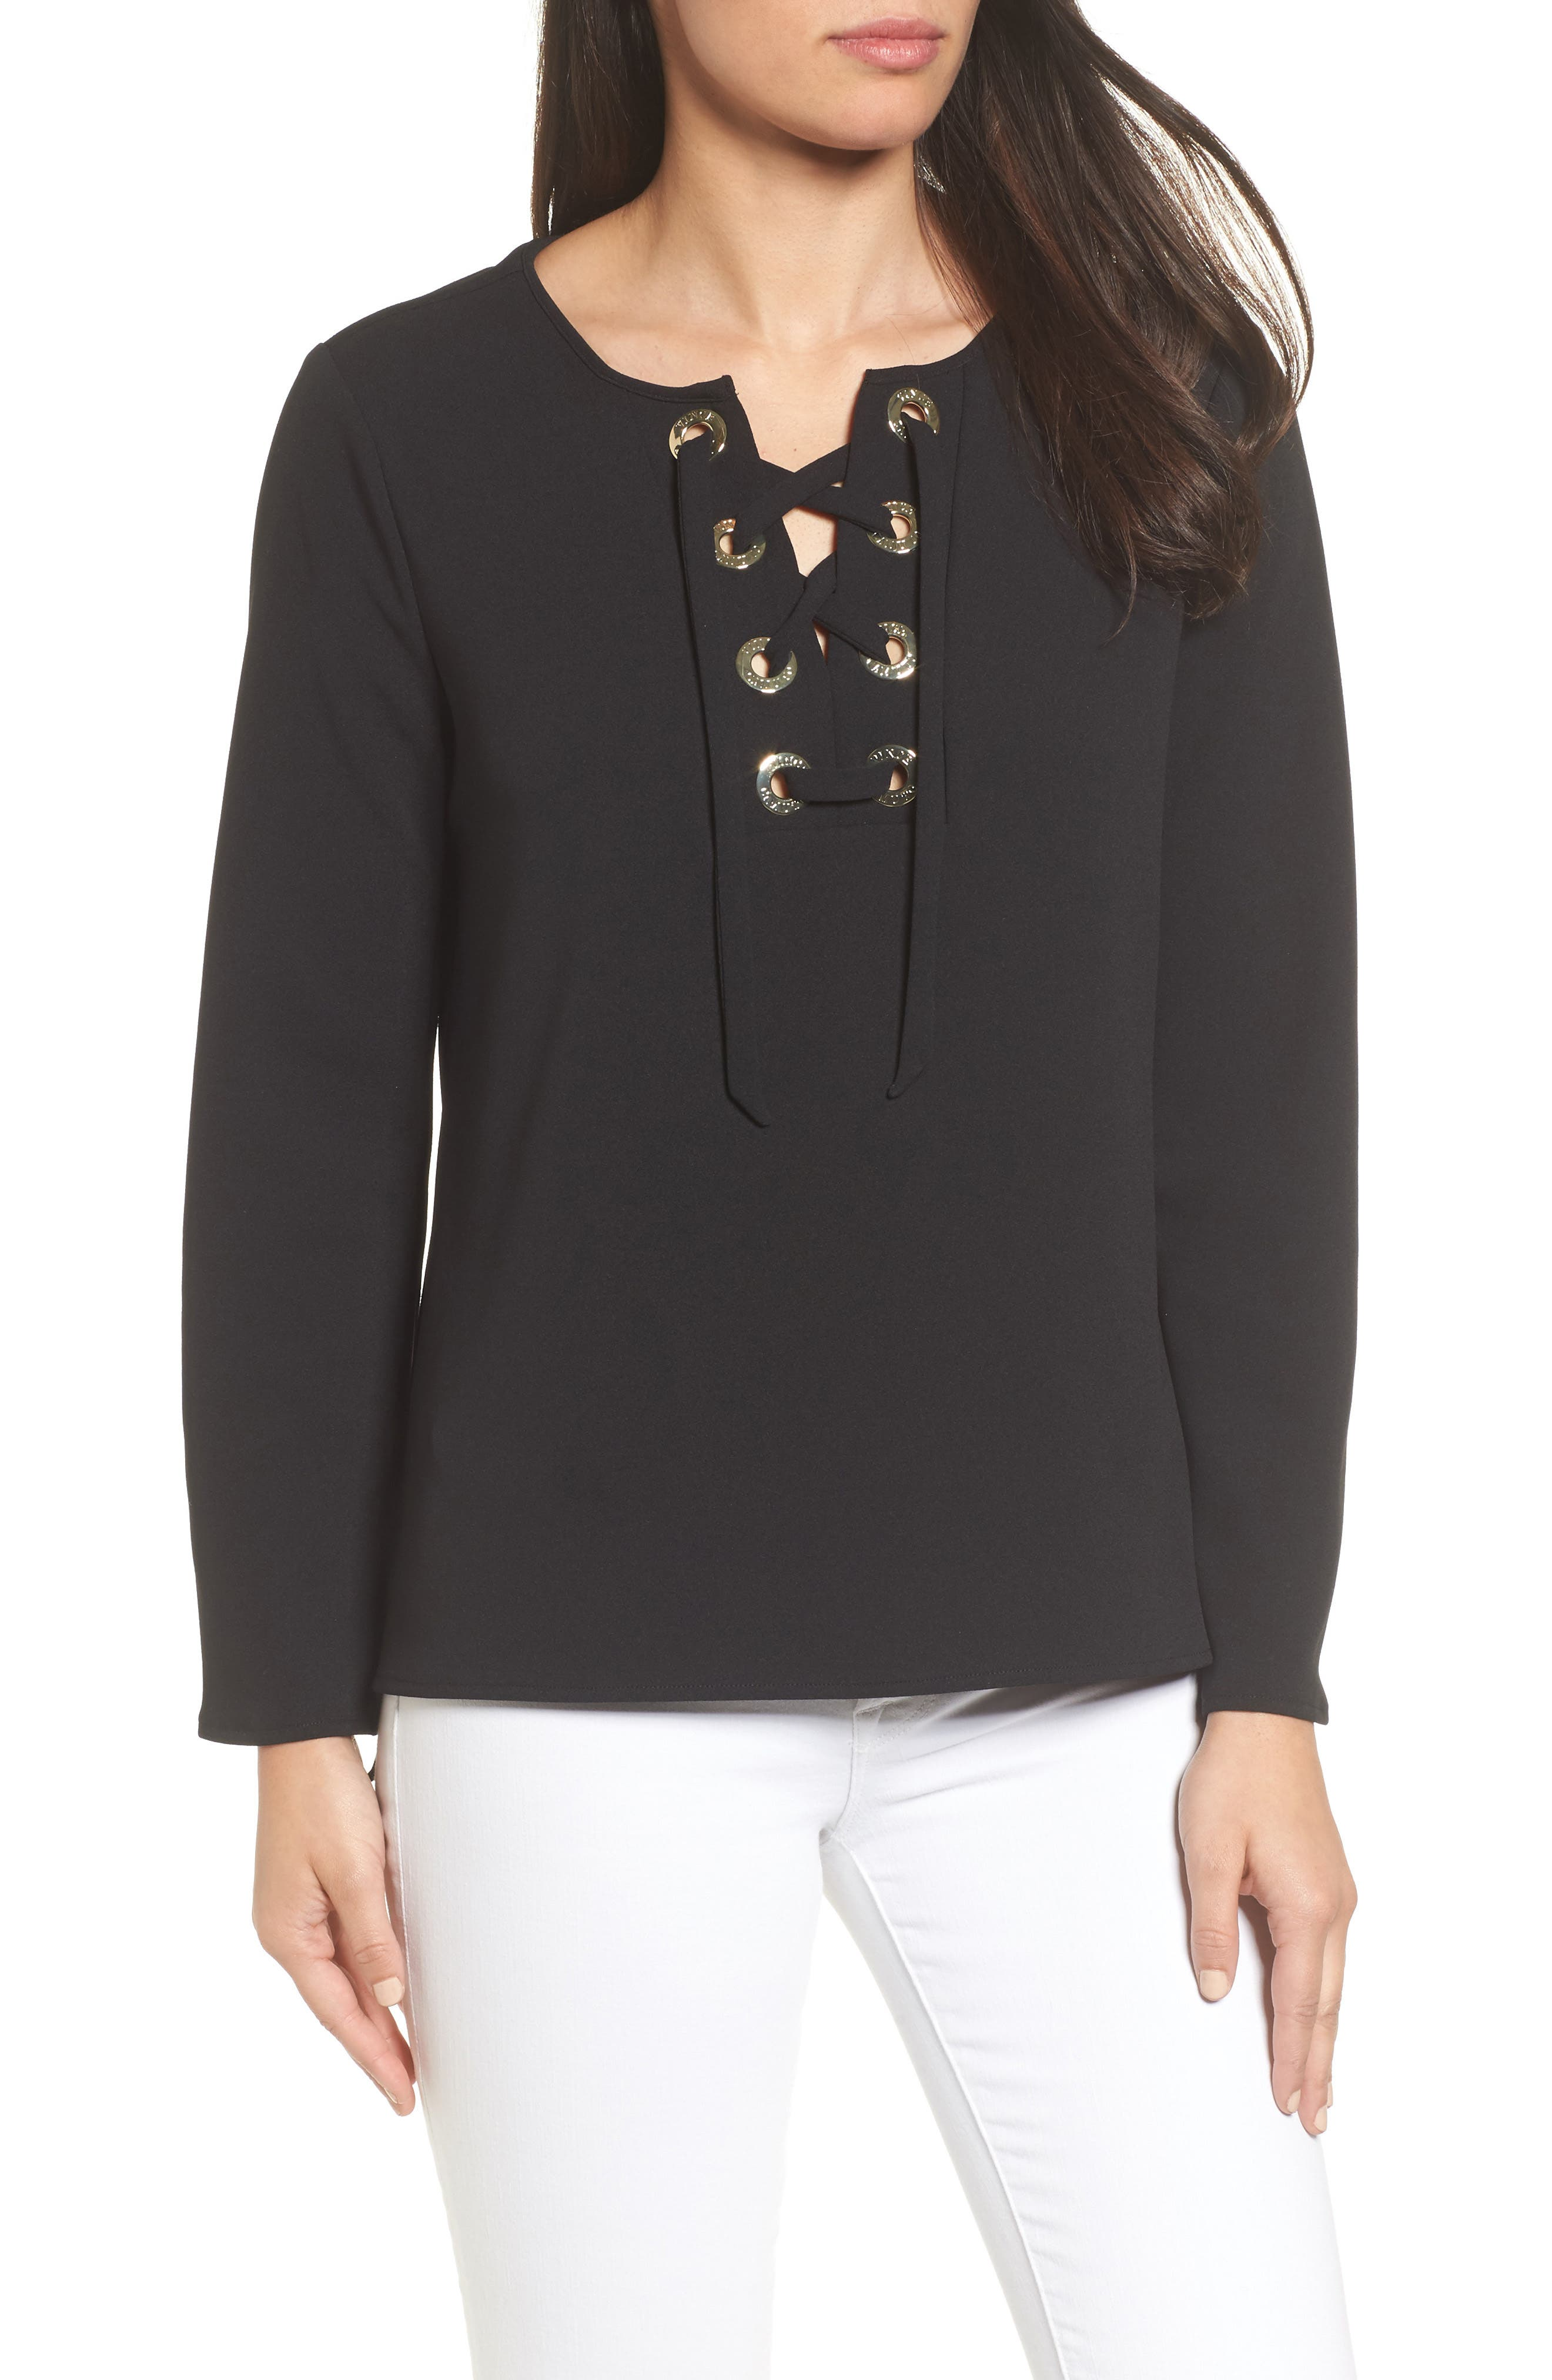 Alternate Image 1 Selected - Vince Camuto Lace-Up Ponte Blouse